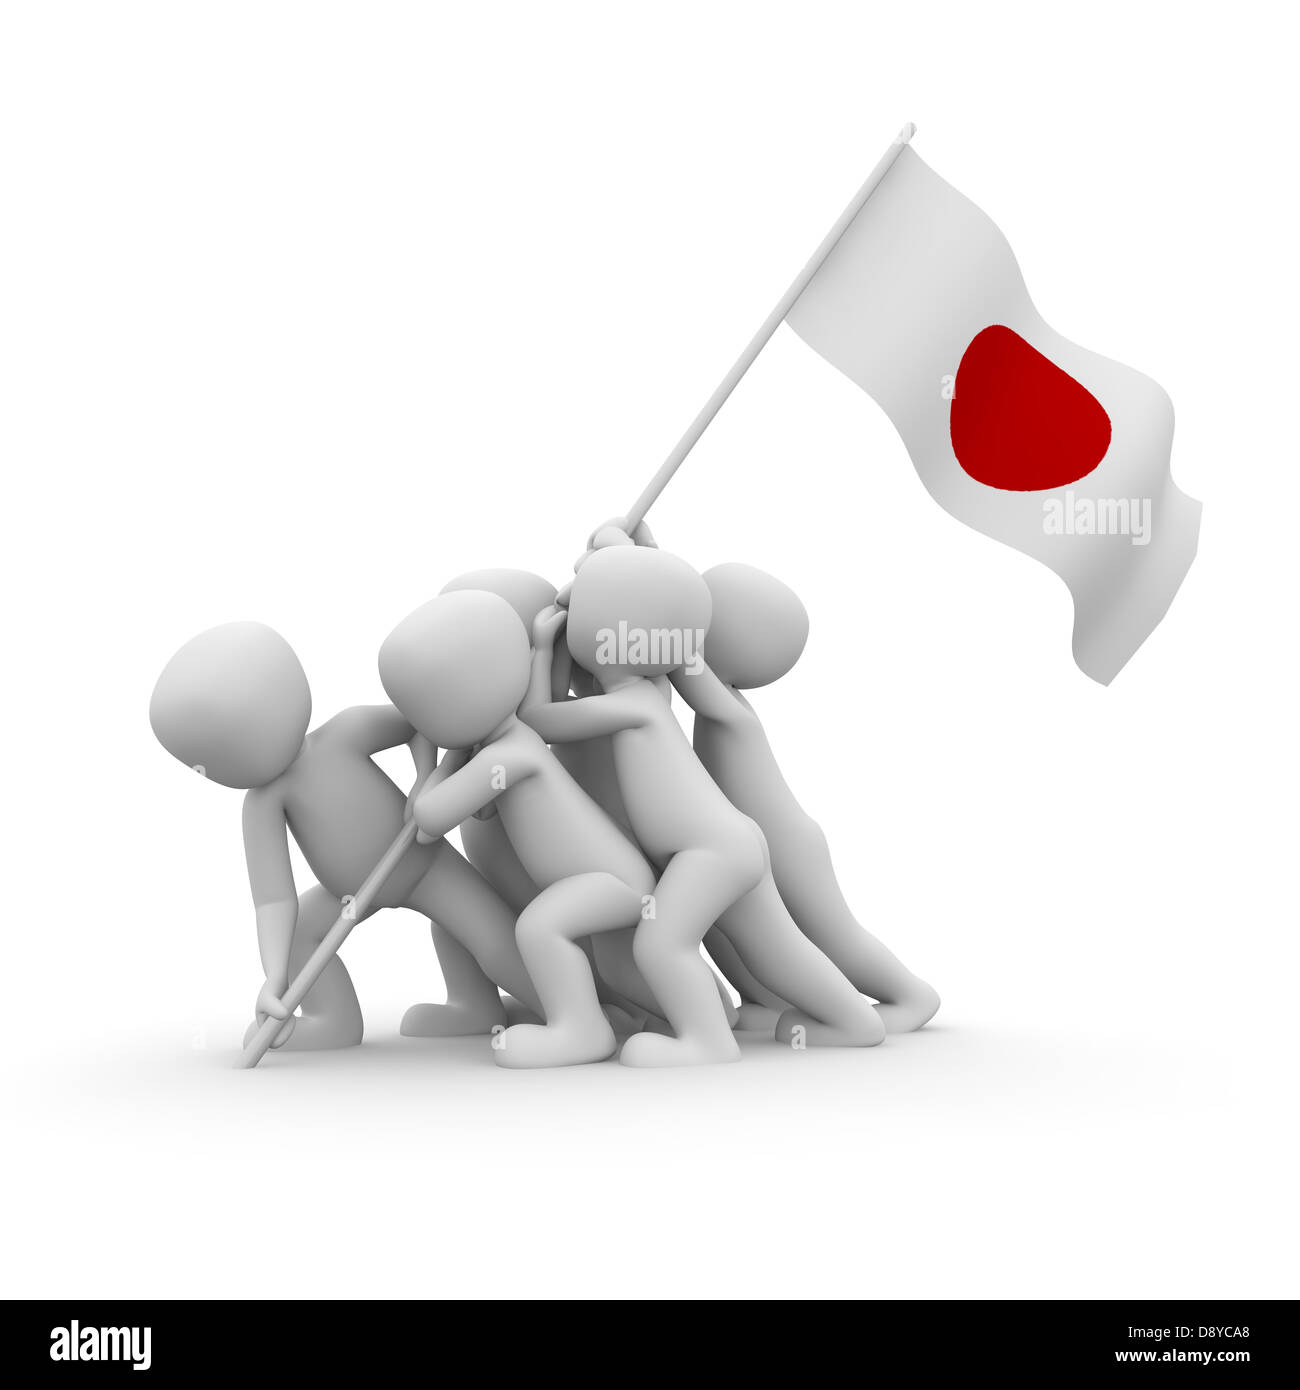 The characters want to hoist the Japanese flag together. - Stock Image